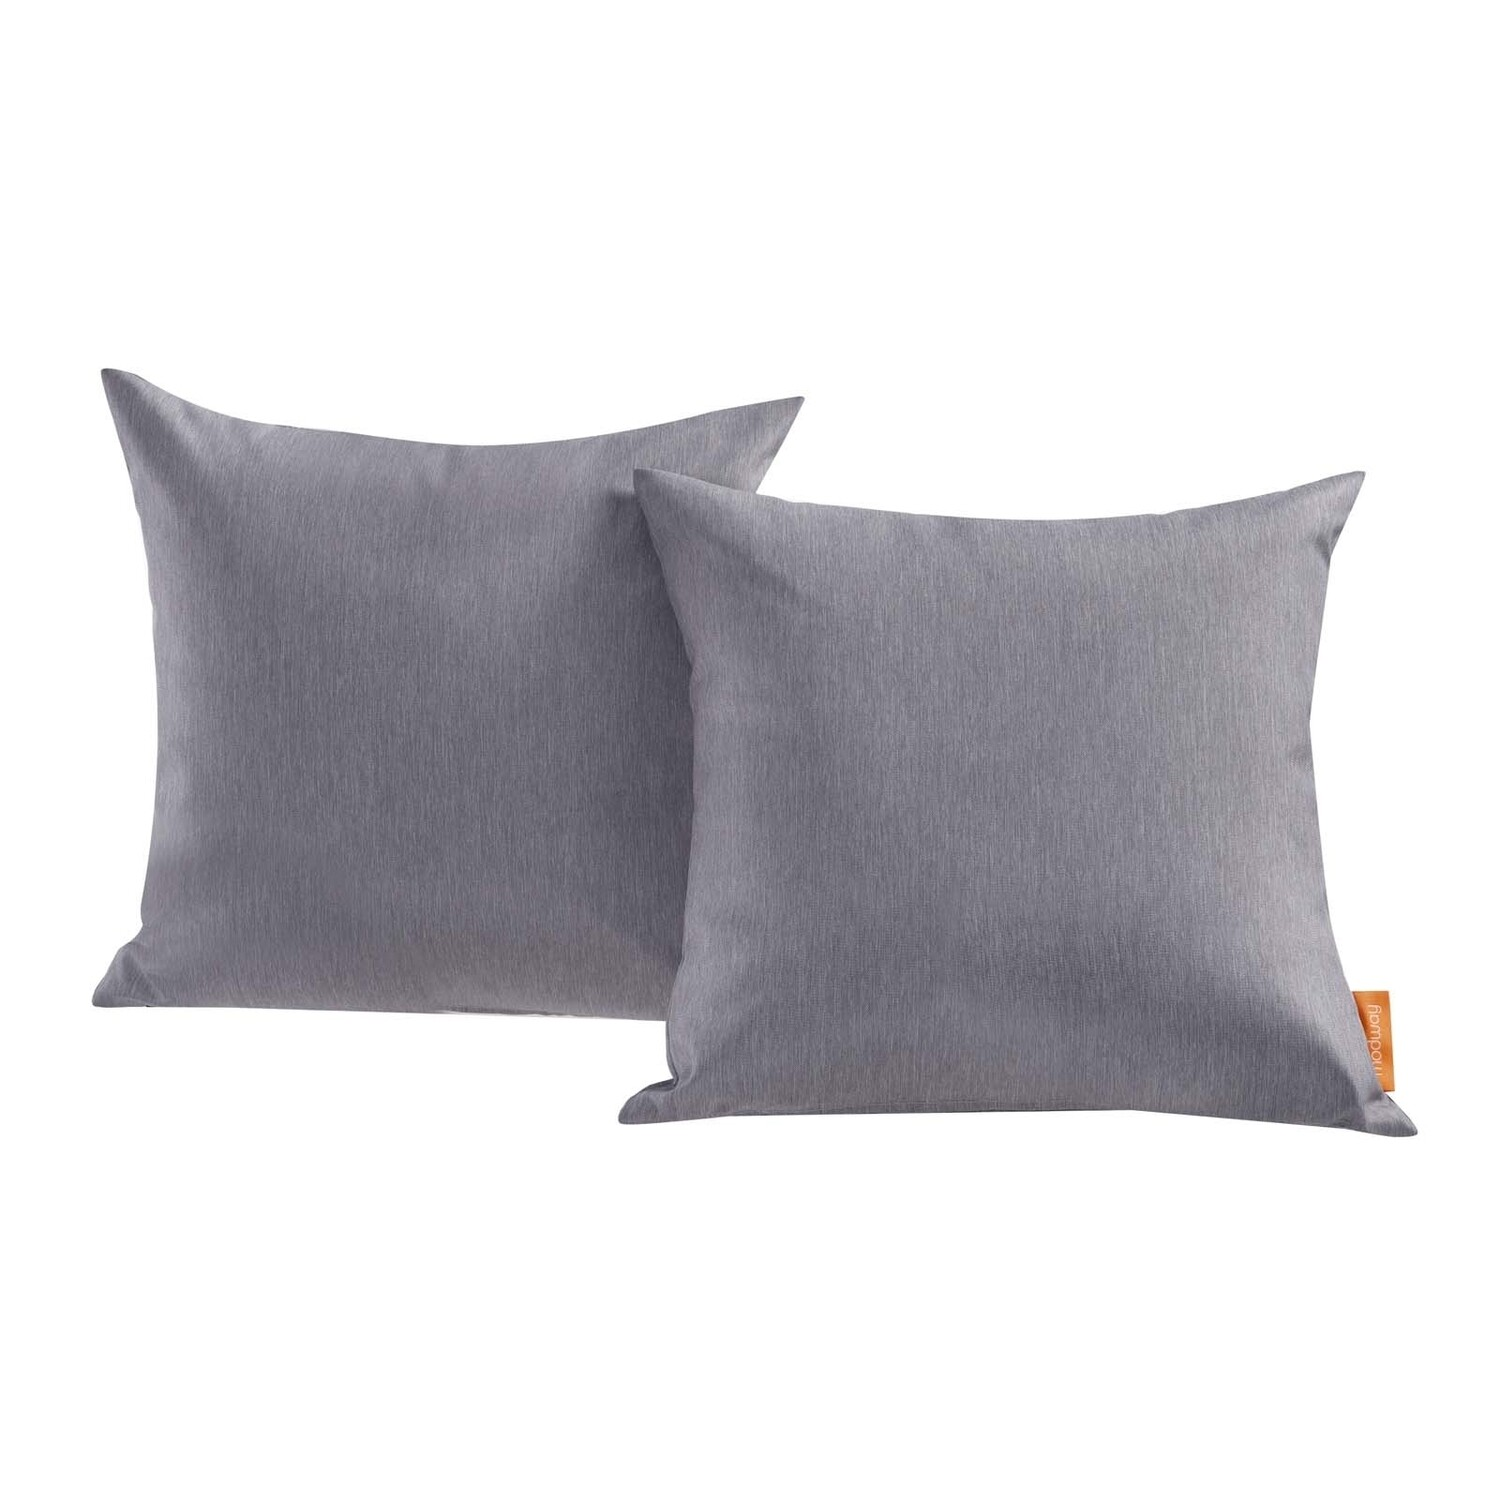 "Hinsdale Patio 2 Piece Pillow Set  17"" x 17"" in Gray"